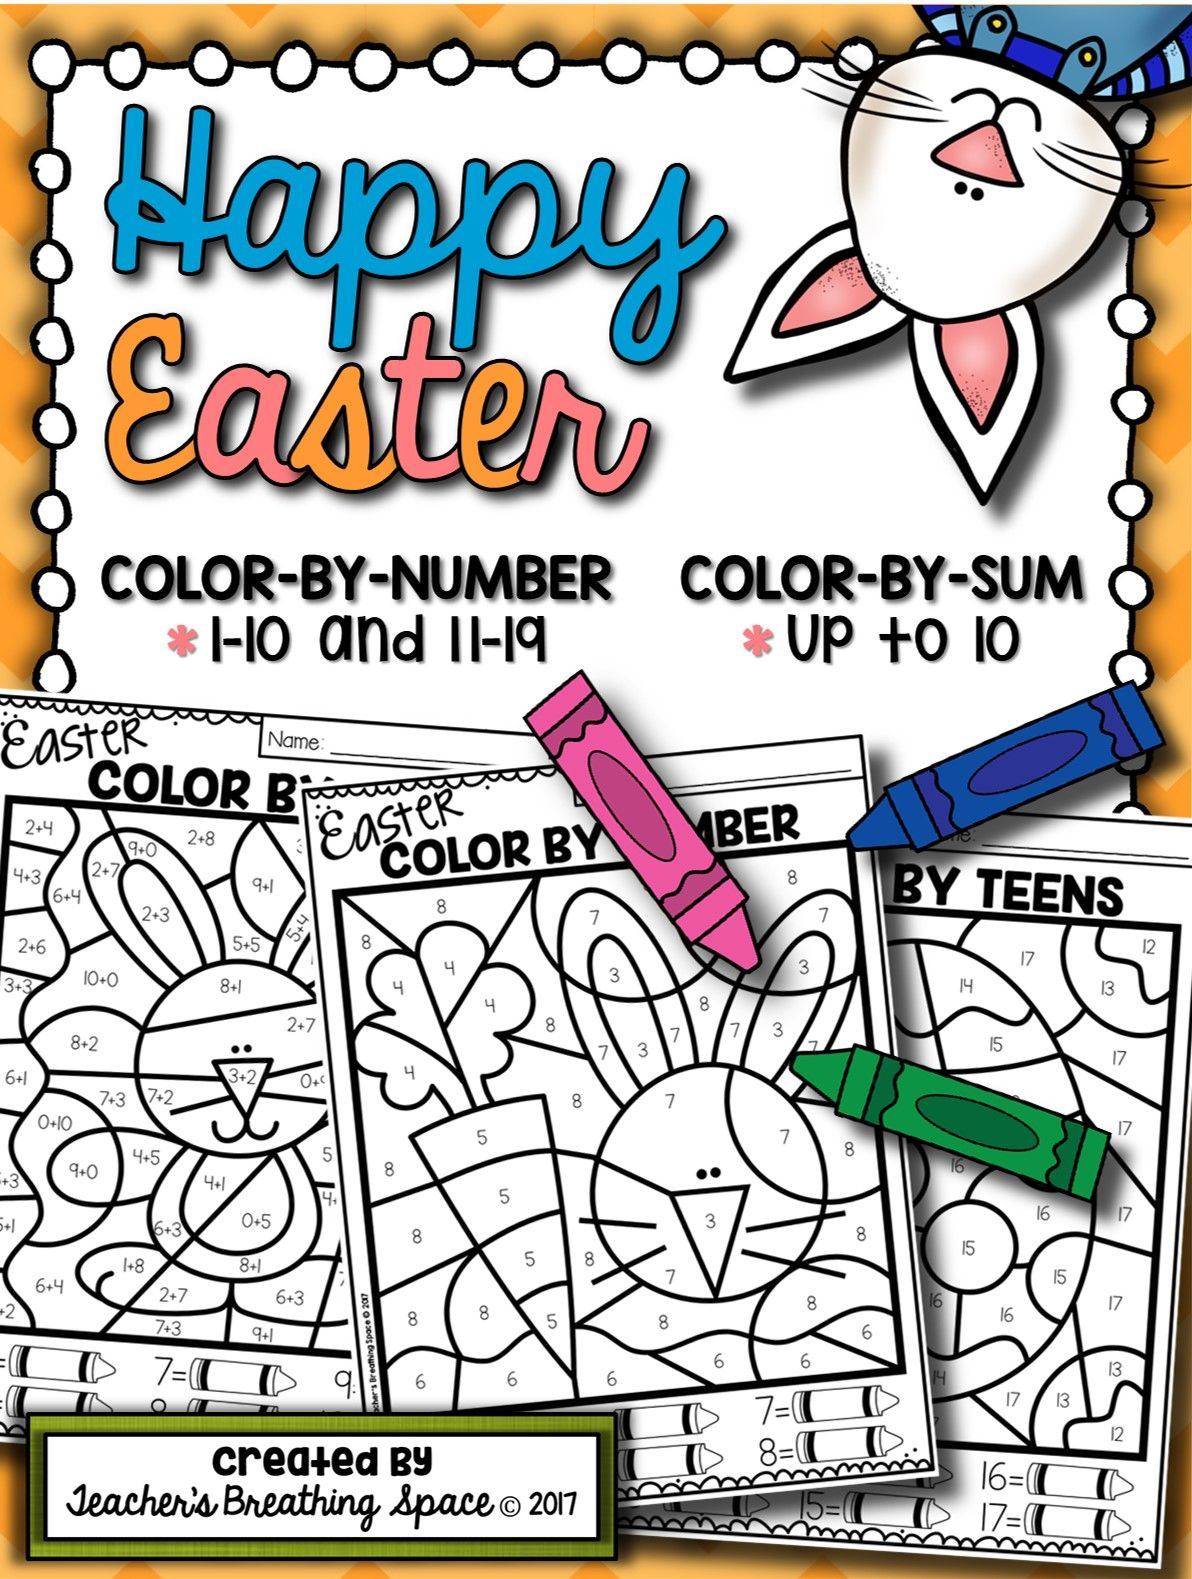 Easter Color By Number 1 10 Amp 11 19 Color By Sum Up To